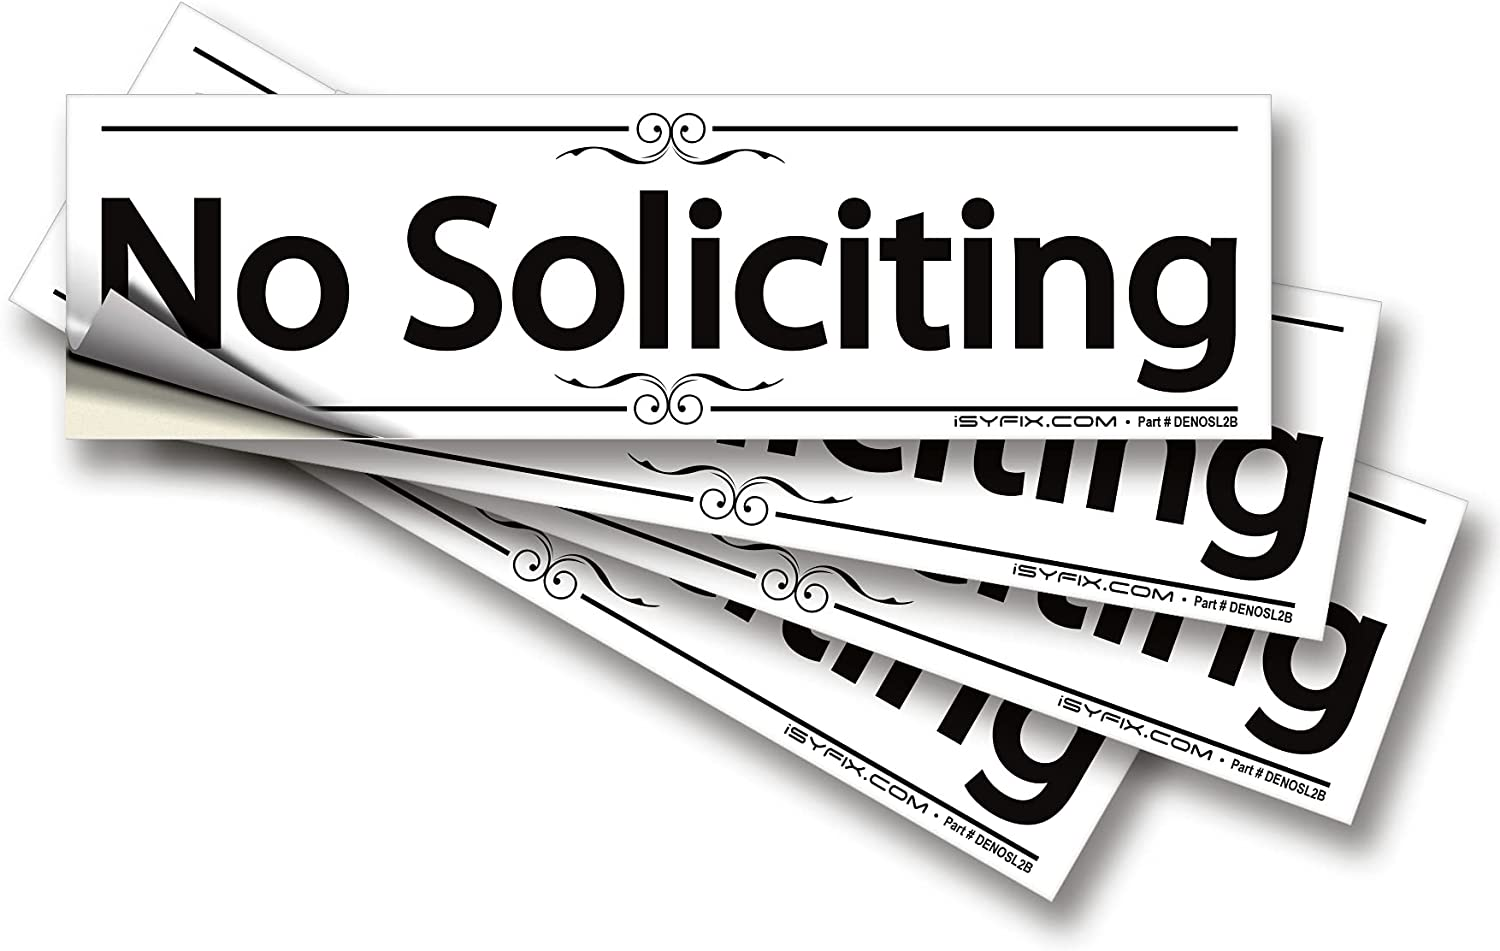 iSYFIX No Soliciting Sign Sticker for House, Home & Business – 4 Pack 7x2 inch – Premium Self-Adhesive Vinyl, Laminated for Ultimate UV, Weather, Scratch, Water and Fade Resistance, Indoor & Outdoor